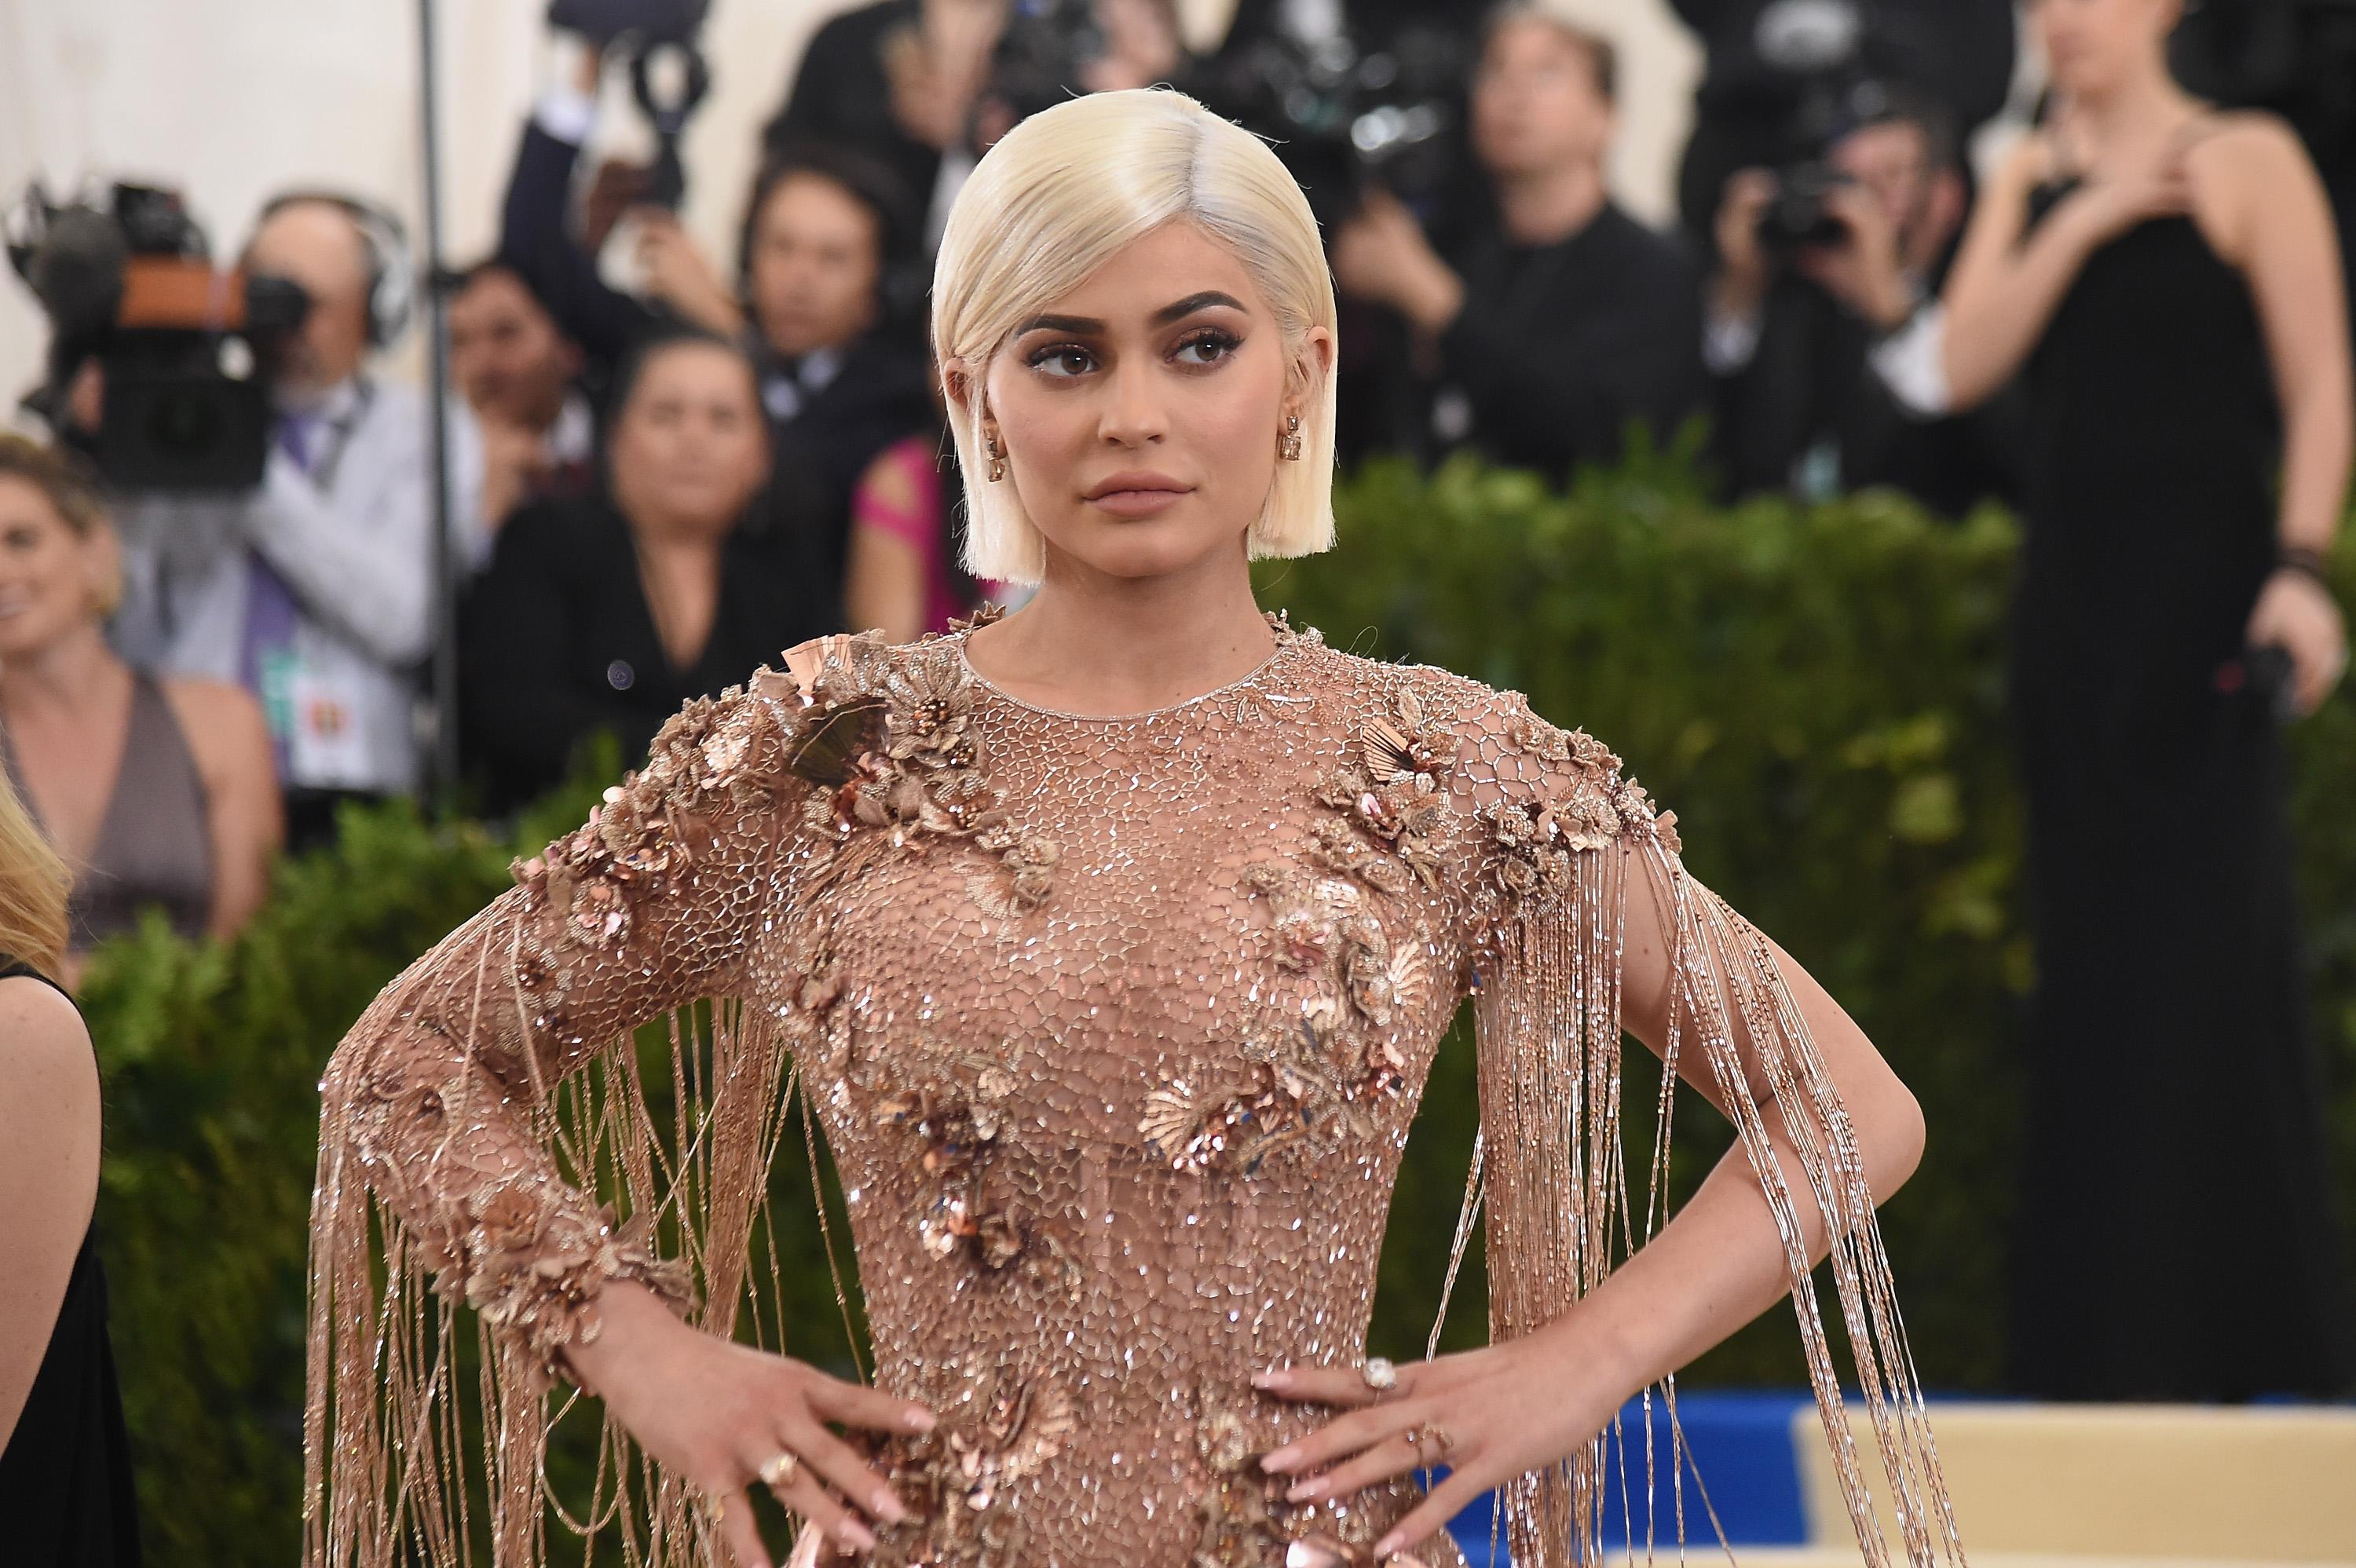 Check out Kylie Jenner's Christmas Tree Dressed in Pink ... for a Girl?